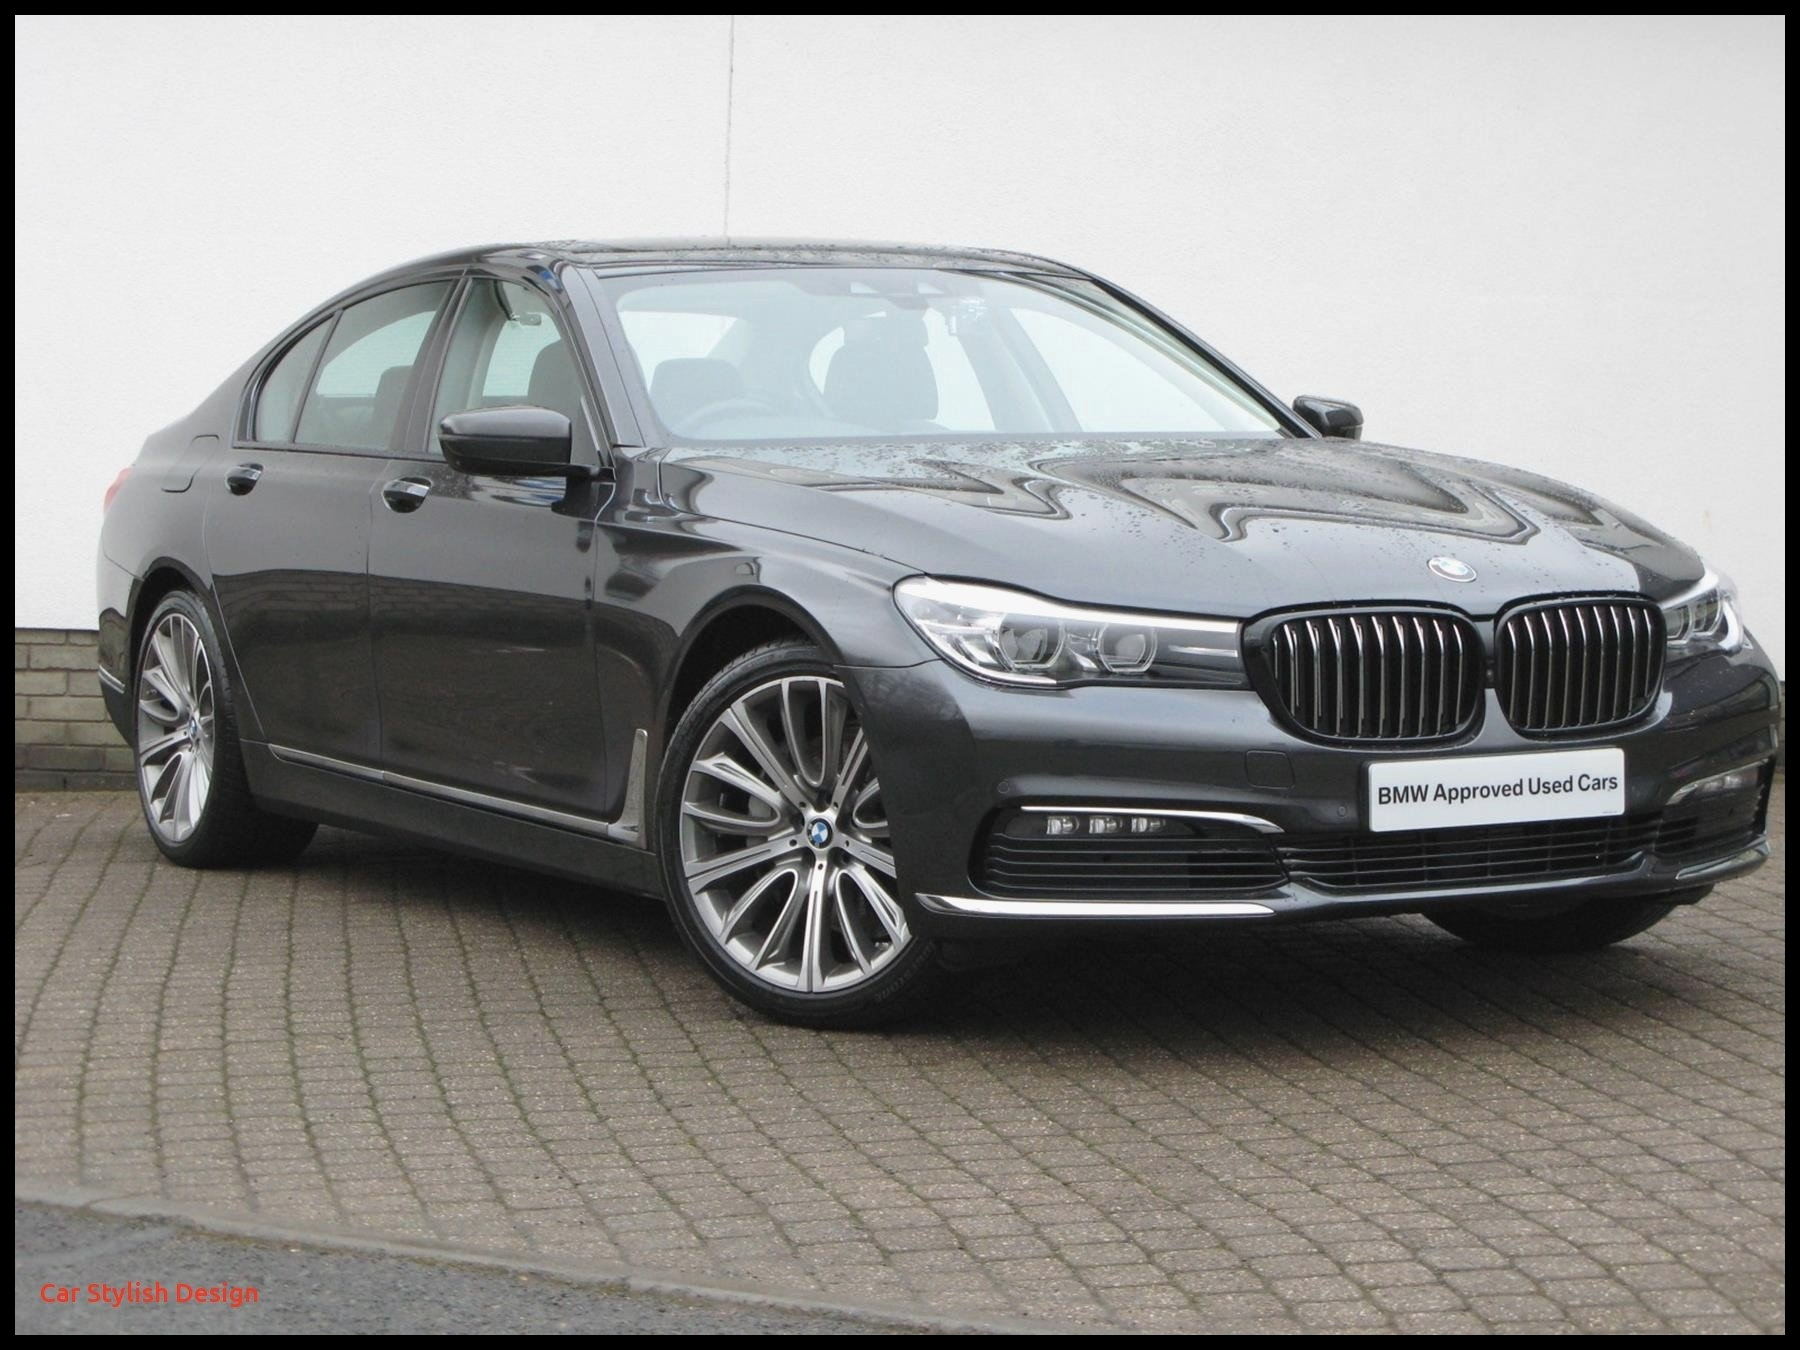 2017 Bmw 3 Series Sedan New Awesome Used 2017 Bmw 7 Series G11 740d Xdrive Saloon